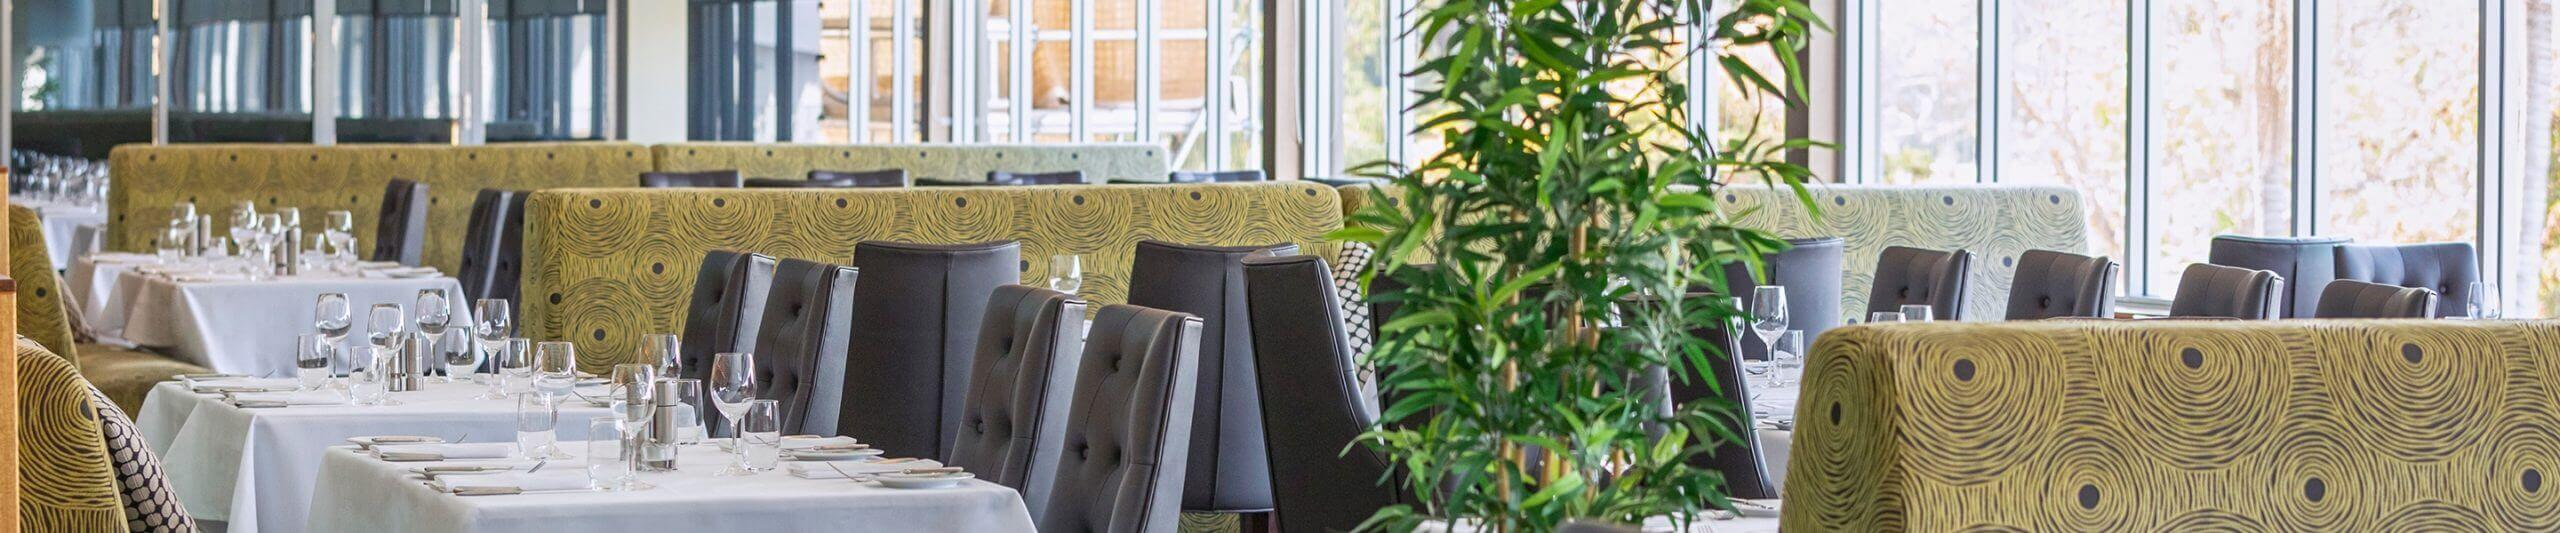 Dining tables and decorative chairs in restaurant